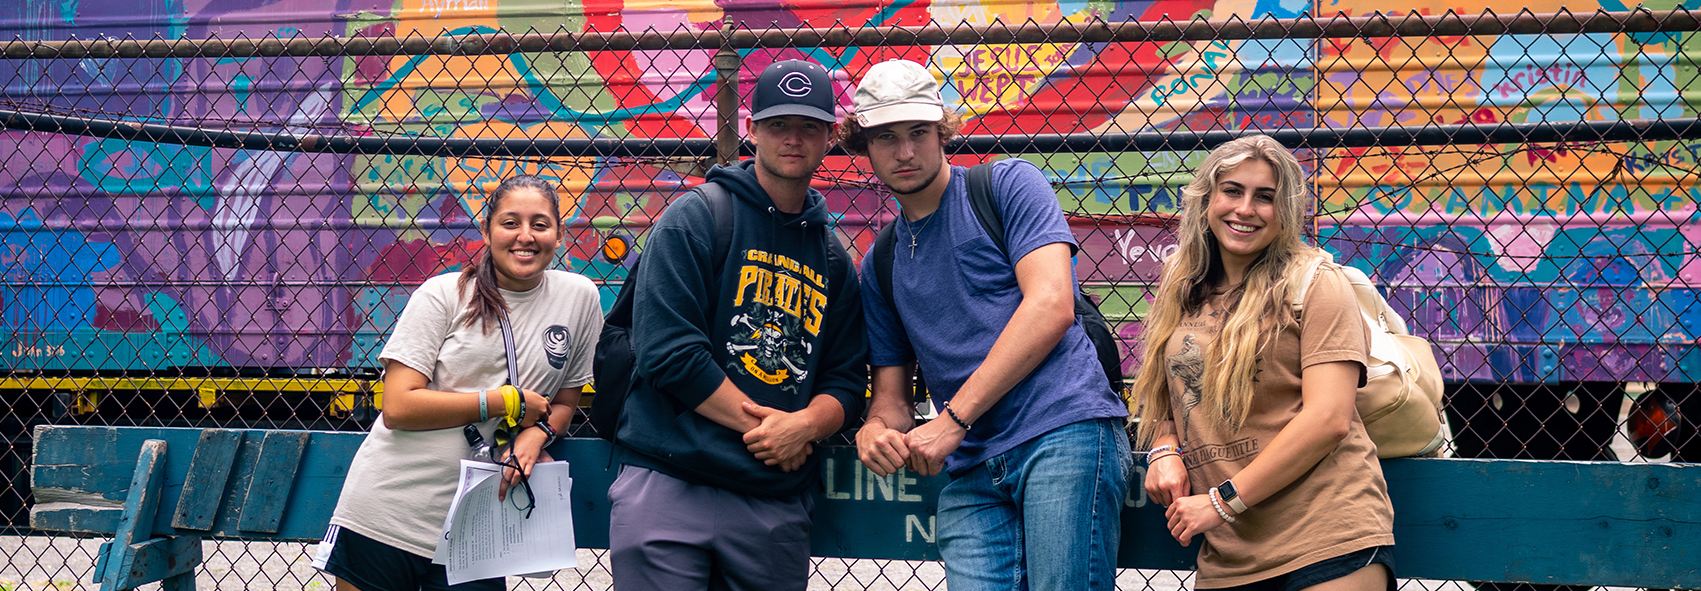 Group of students standing in front of a graffiti wall